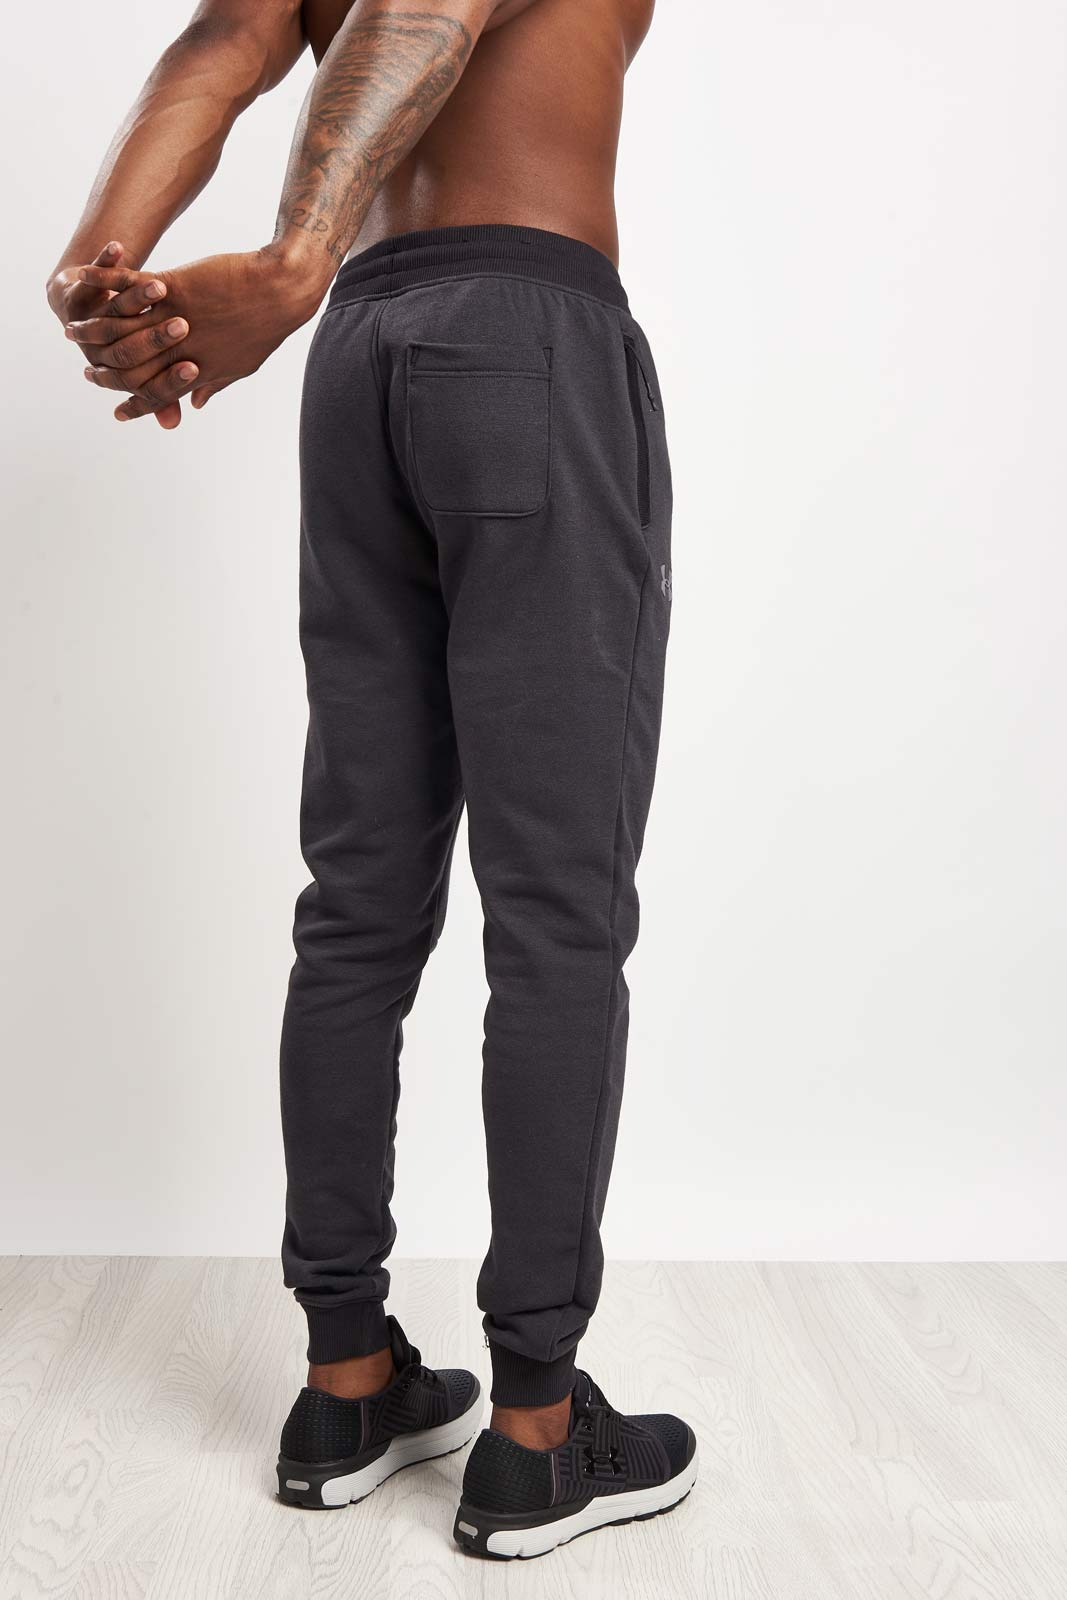 Under Armour Threadborne Stacked Jogger-Grey image 2 - The Sports Edit